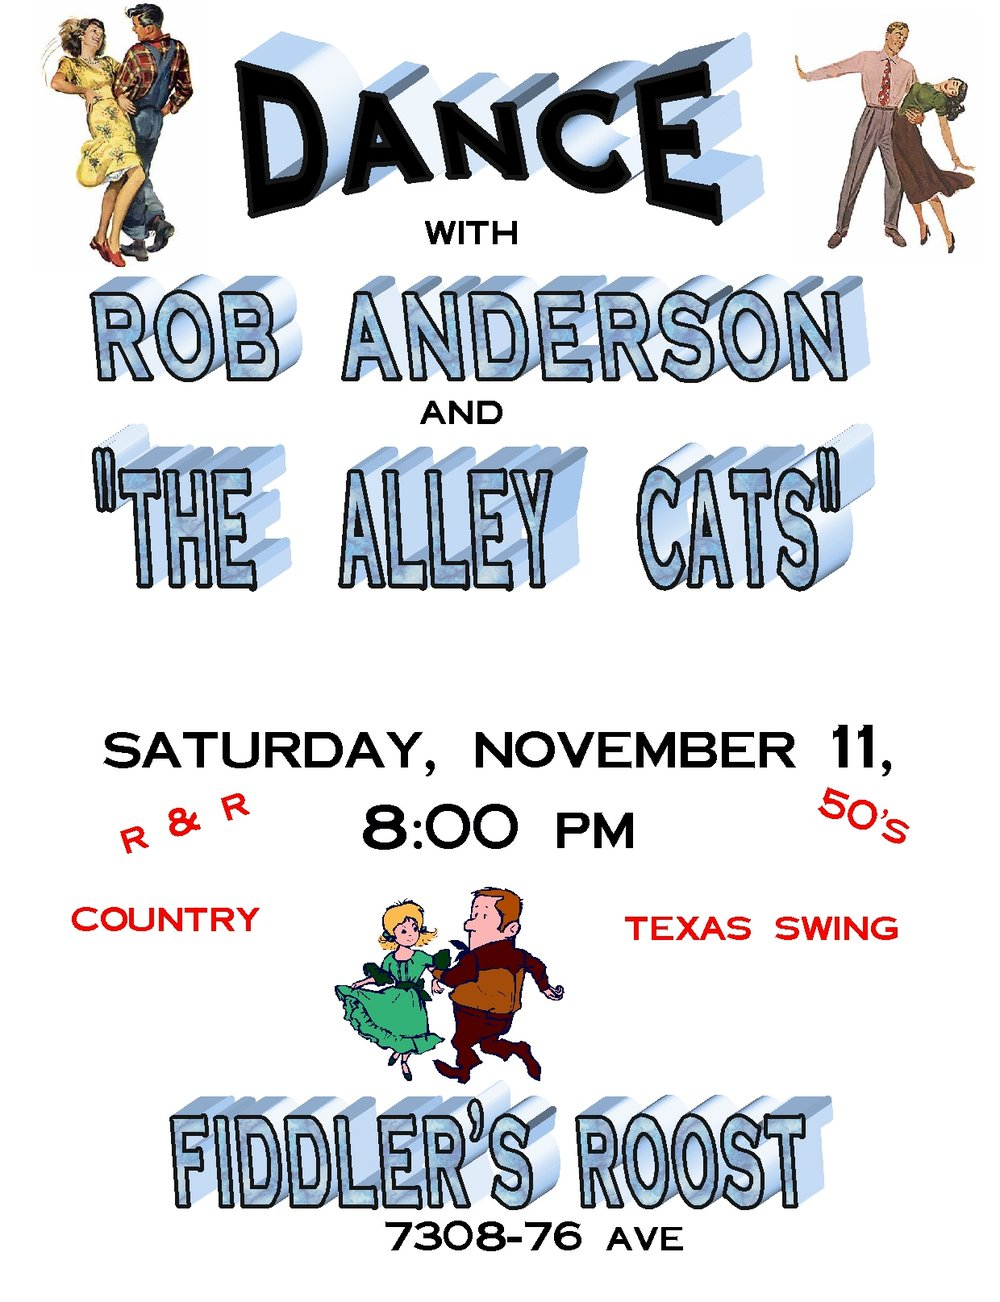 Rob Anderson & The Alley Cats